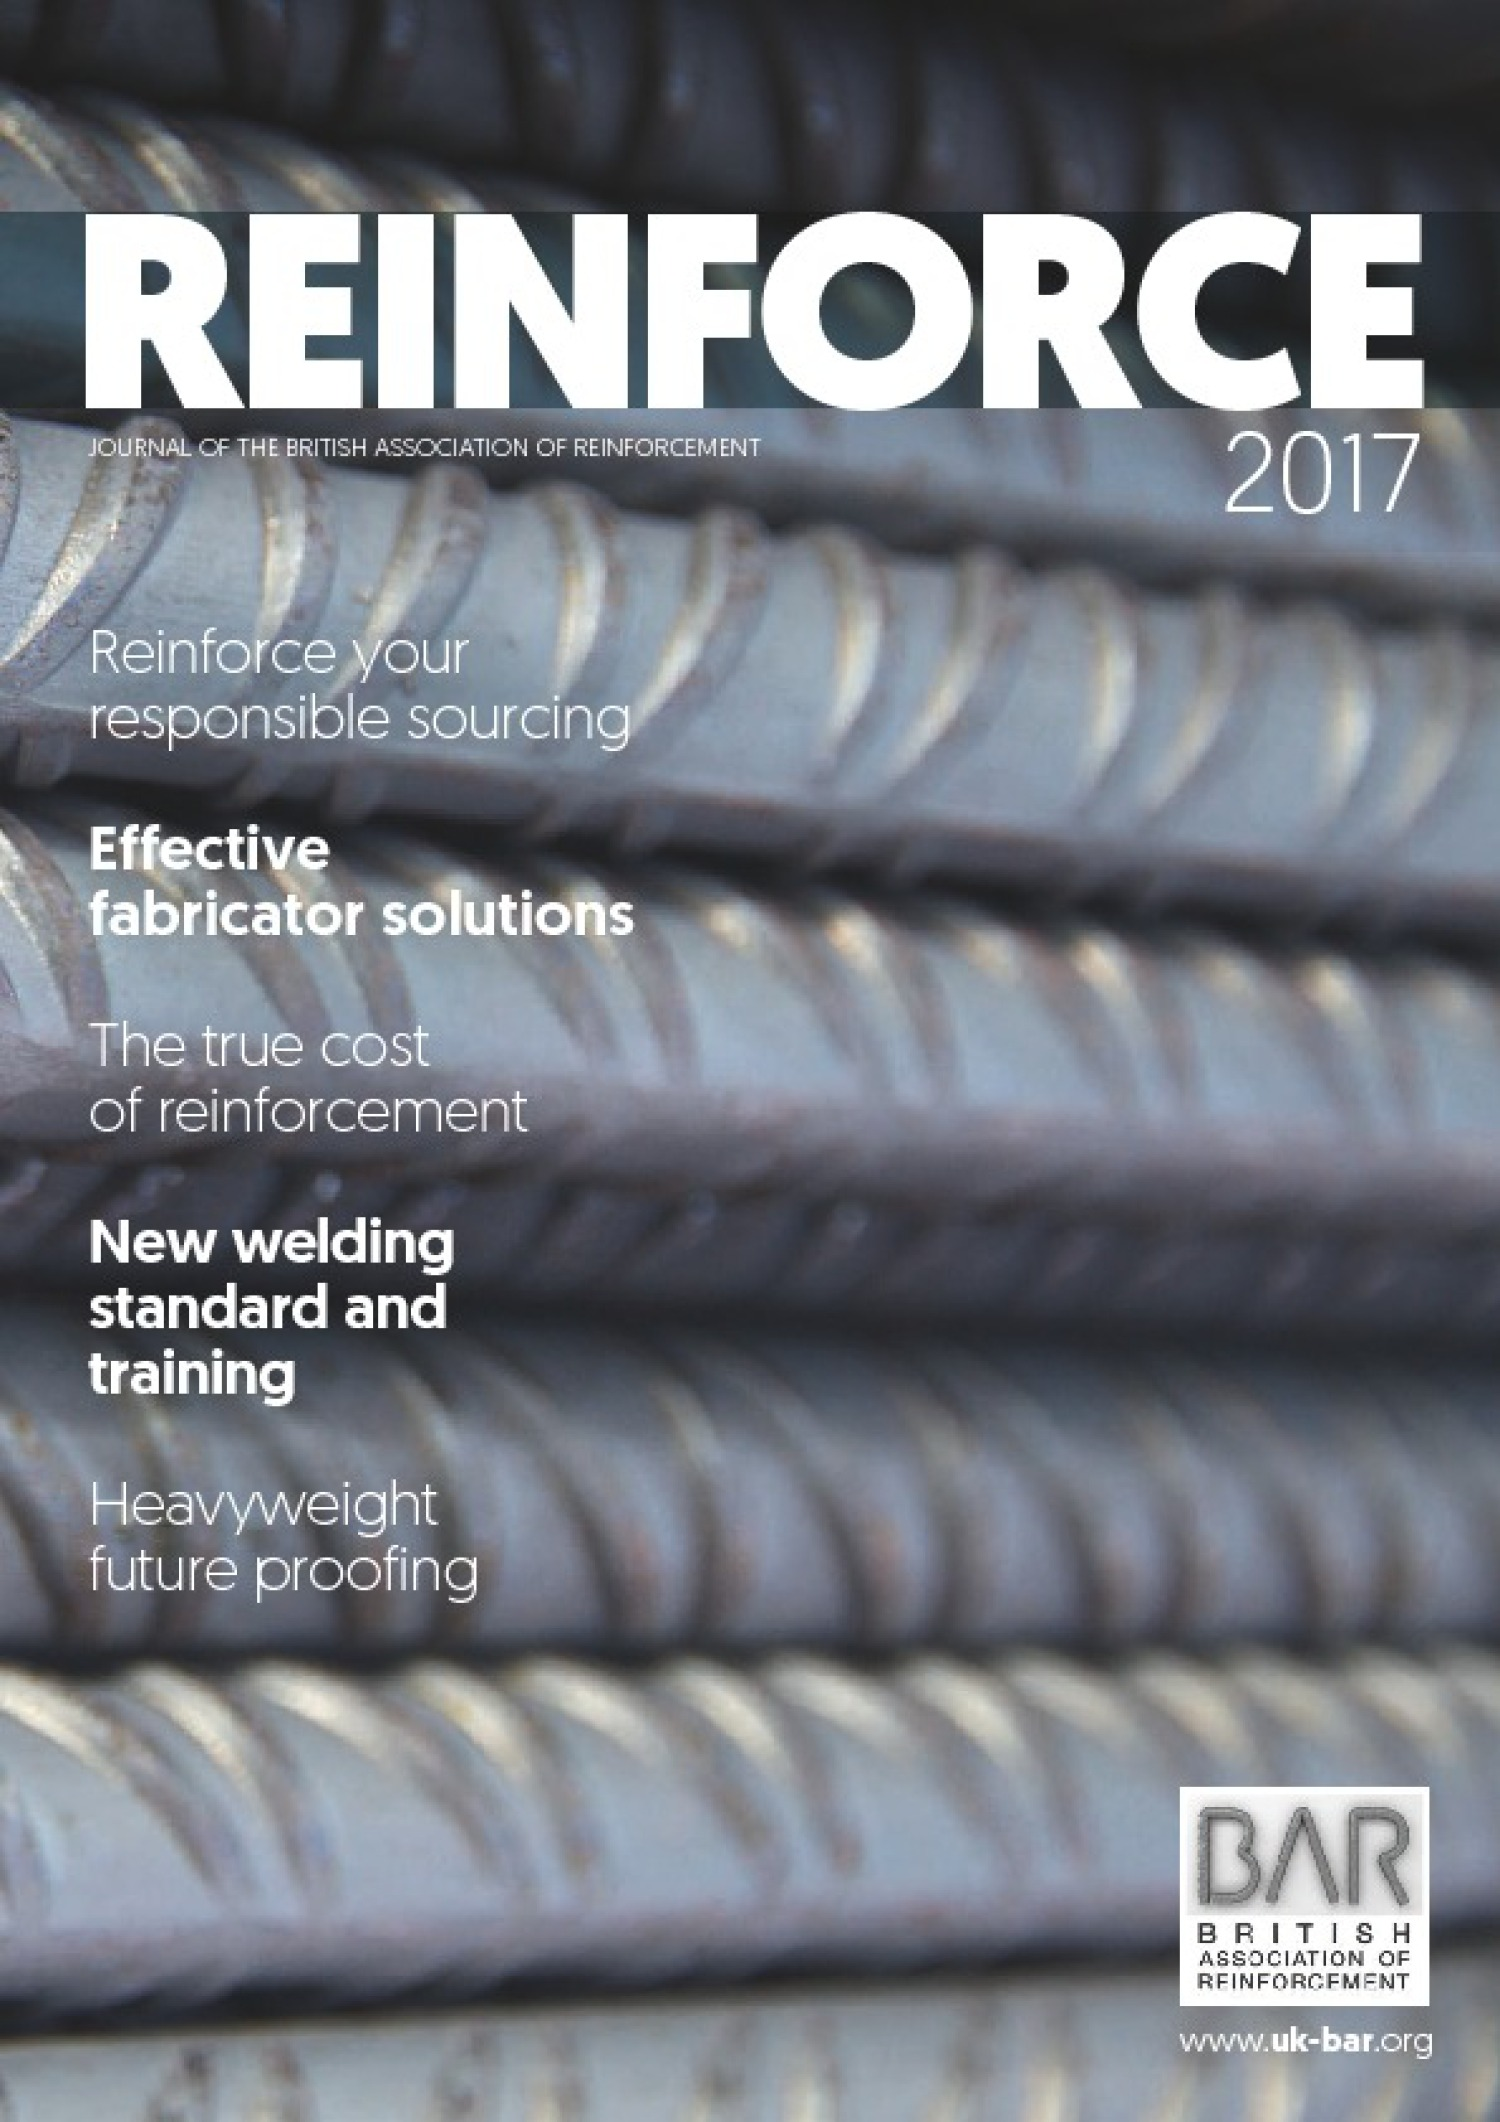 Reinforce Magazine 2017